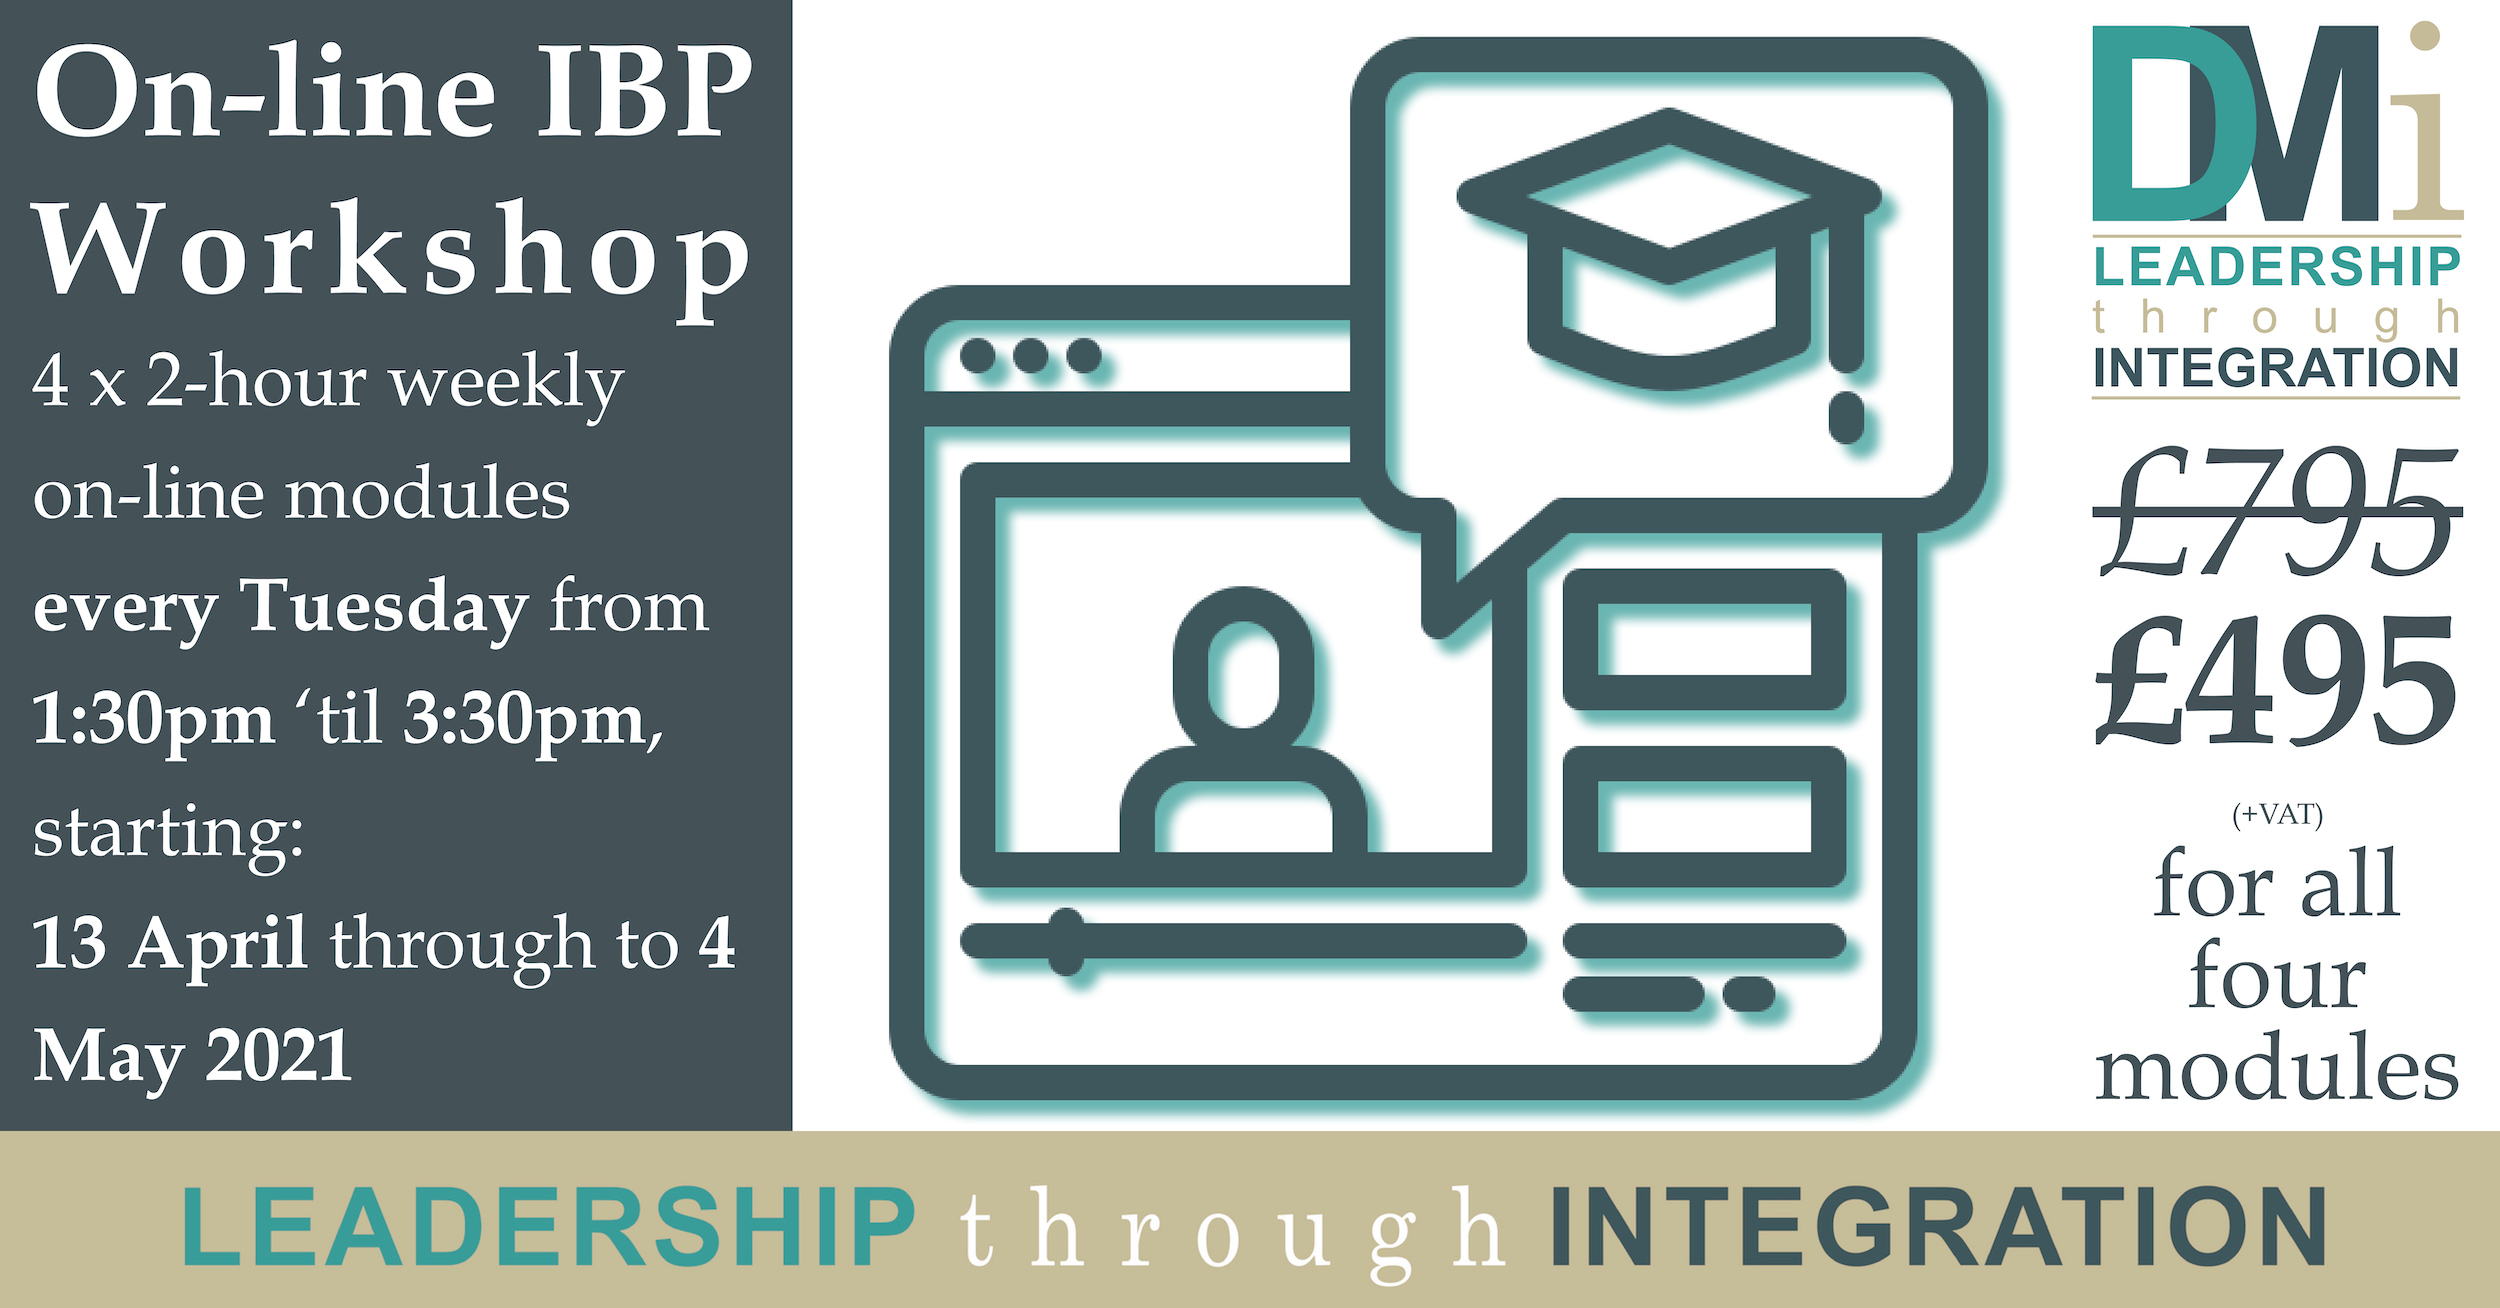 On Line IBP Workshop April to May 2021